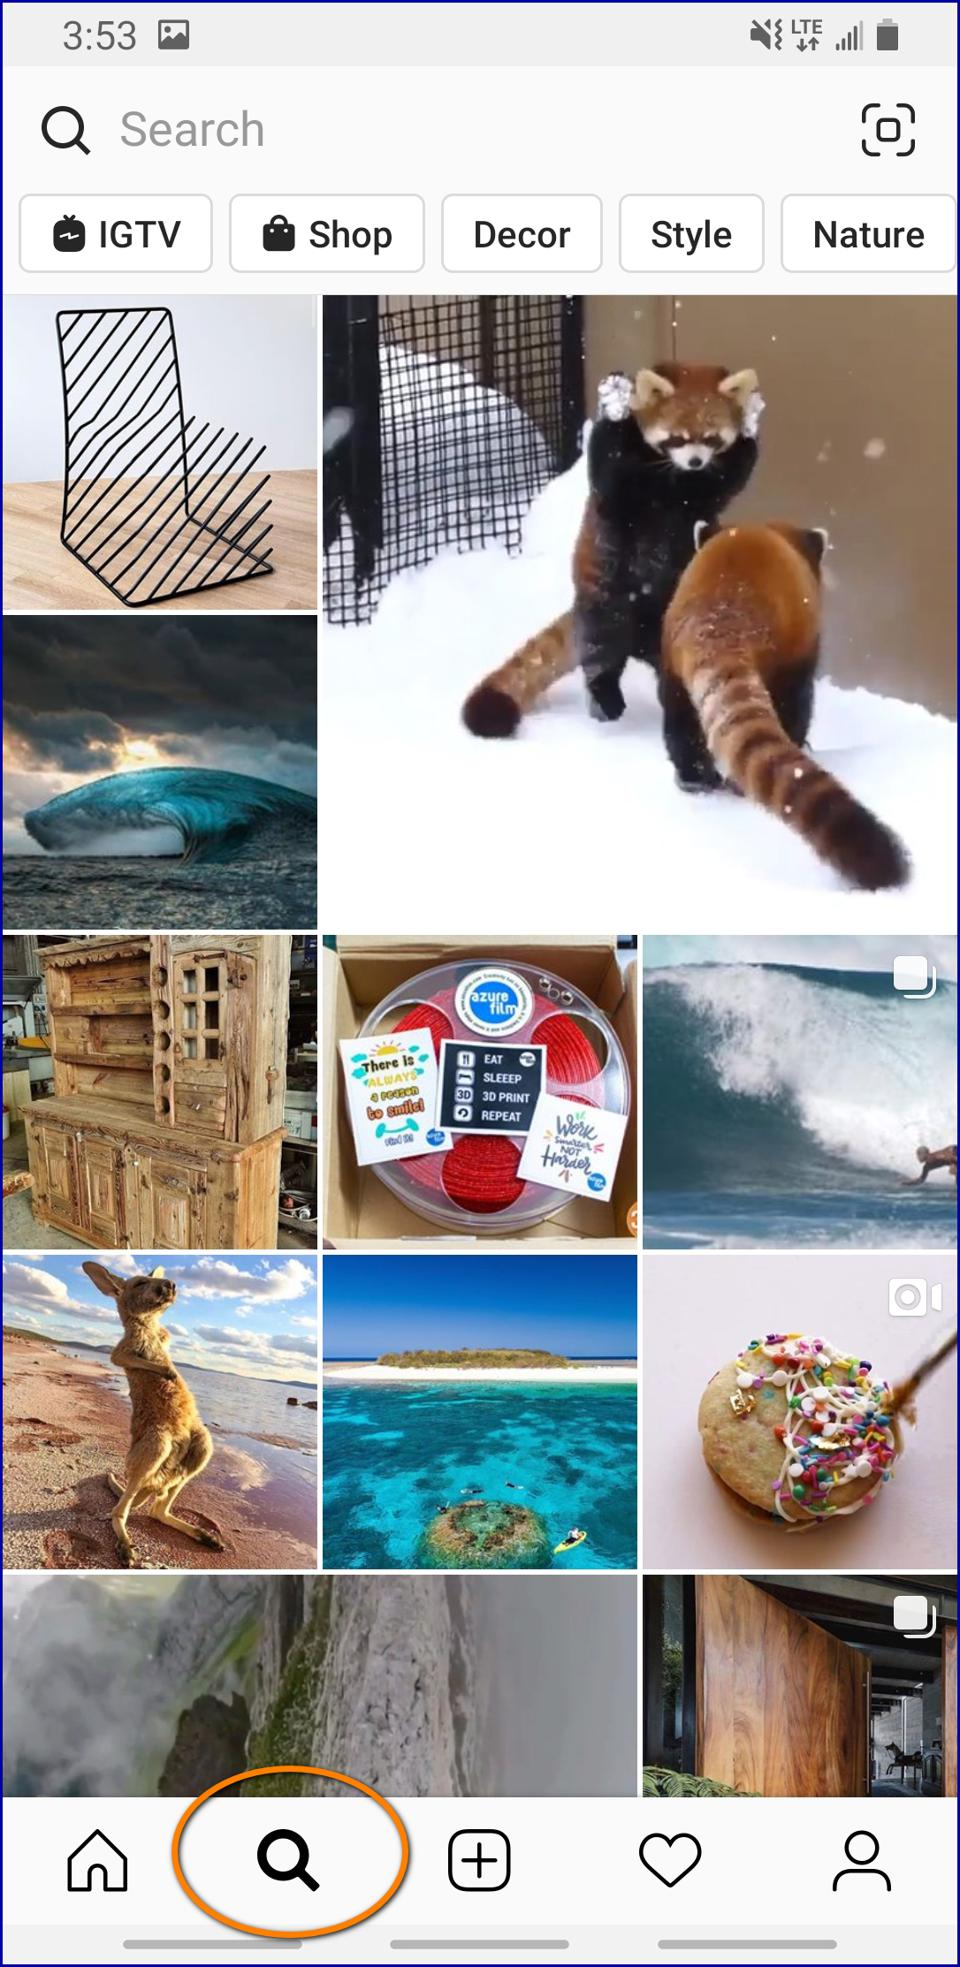 Where Is Instagram Explore Tab Found? See the magnifying glass at bottom of screen app.